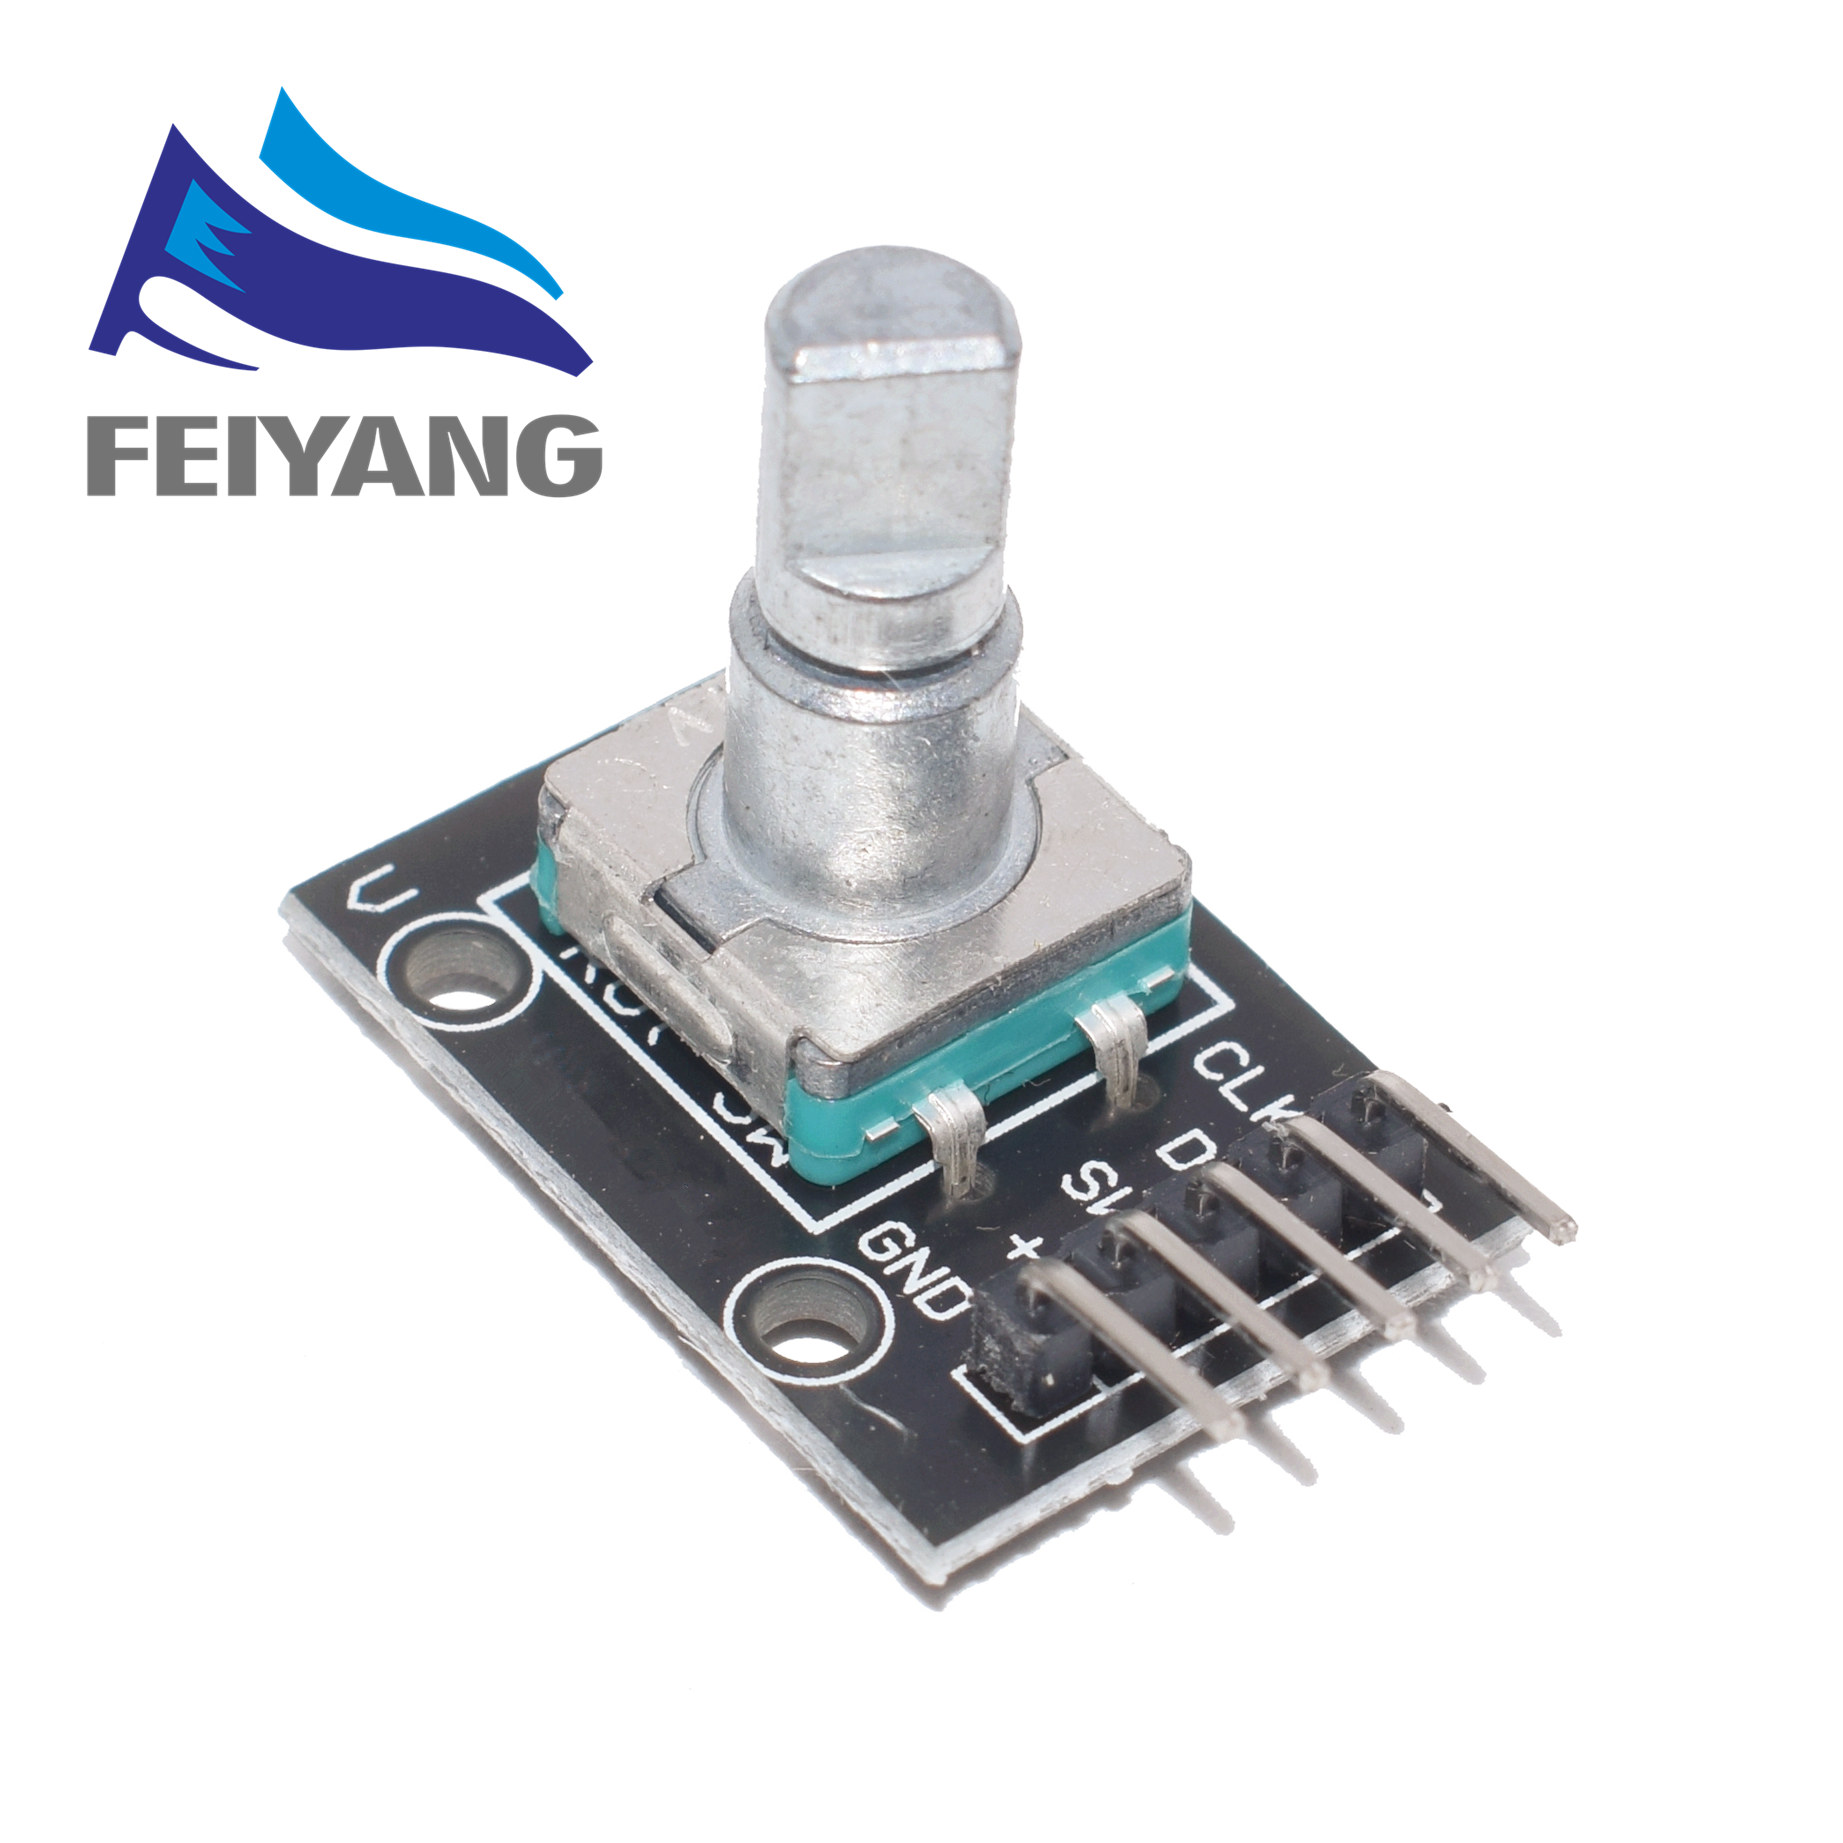 4pcs KY-040 Rotary Encoder Module for Arduino AVR PIC